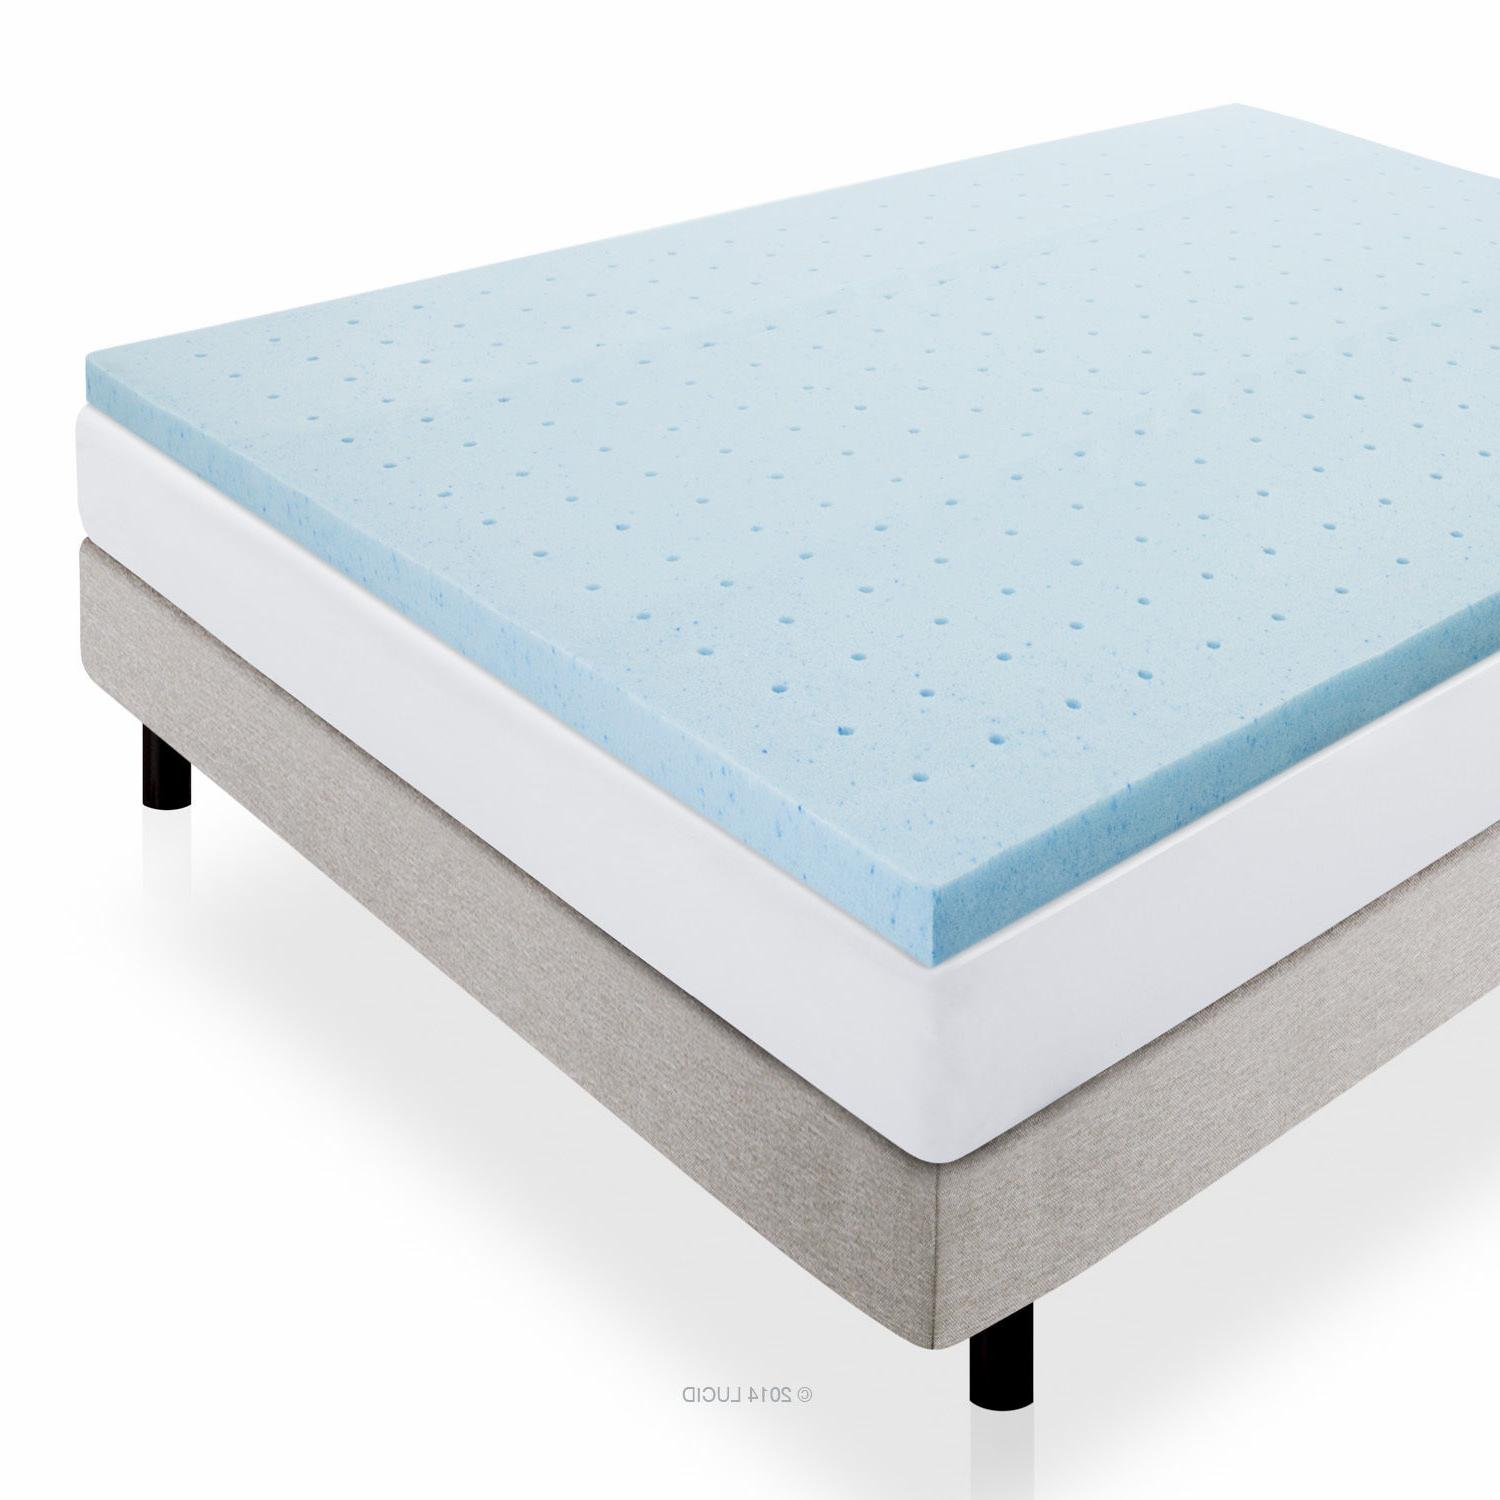 2 inch ventilated gel memory foam mattress